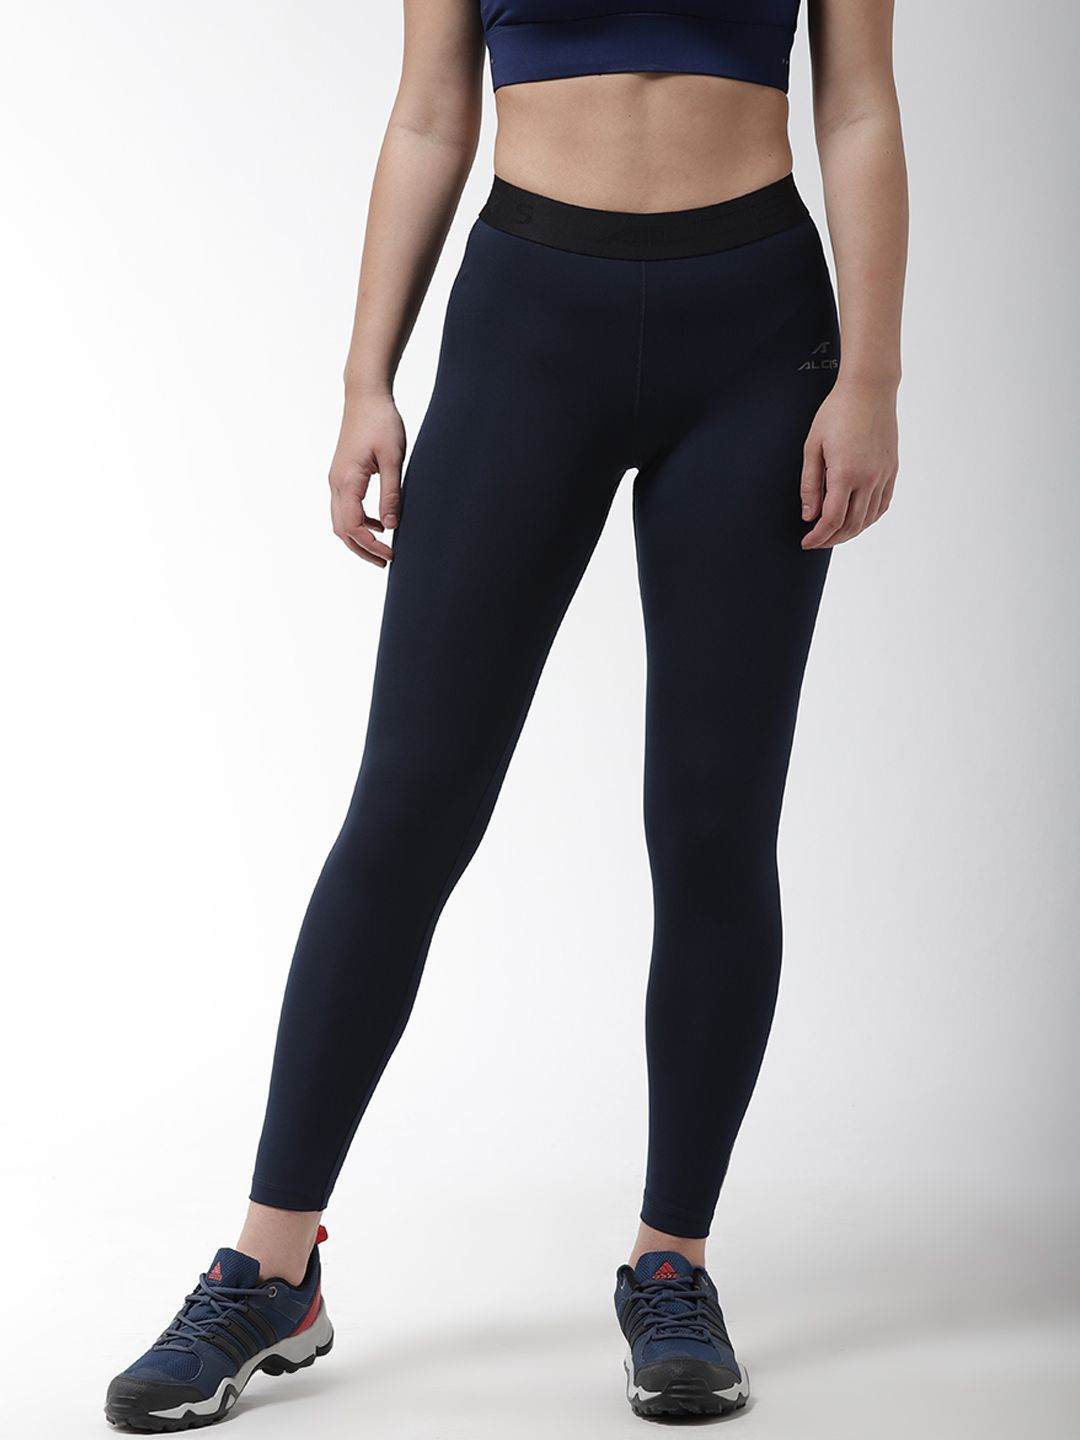 Alcis Polyester Blend Tights - Navy